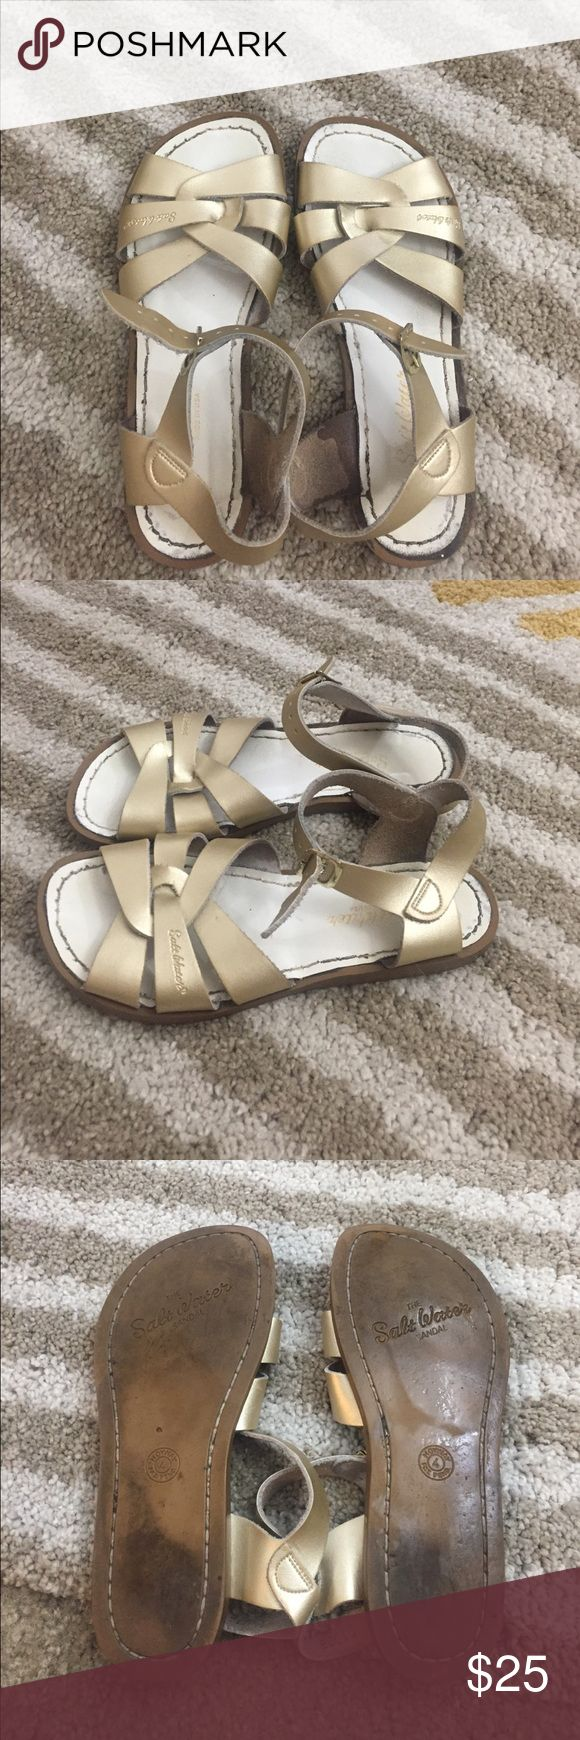 Selling this Saltwater sandals on Poshmark! My username is: markiej3. #shopmycloset #poshmark #fashion #shopping #style #forsale #salt water sandals #Shoes